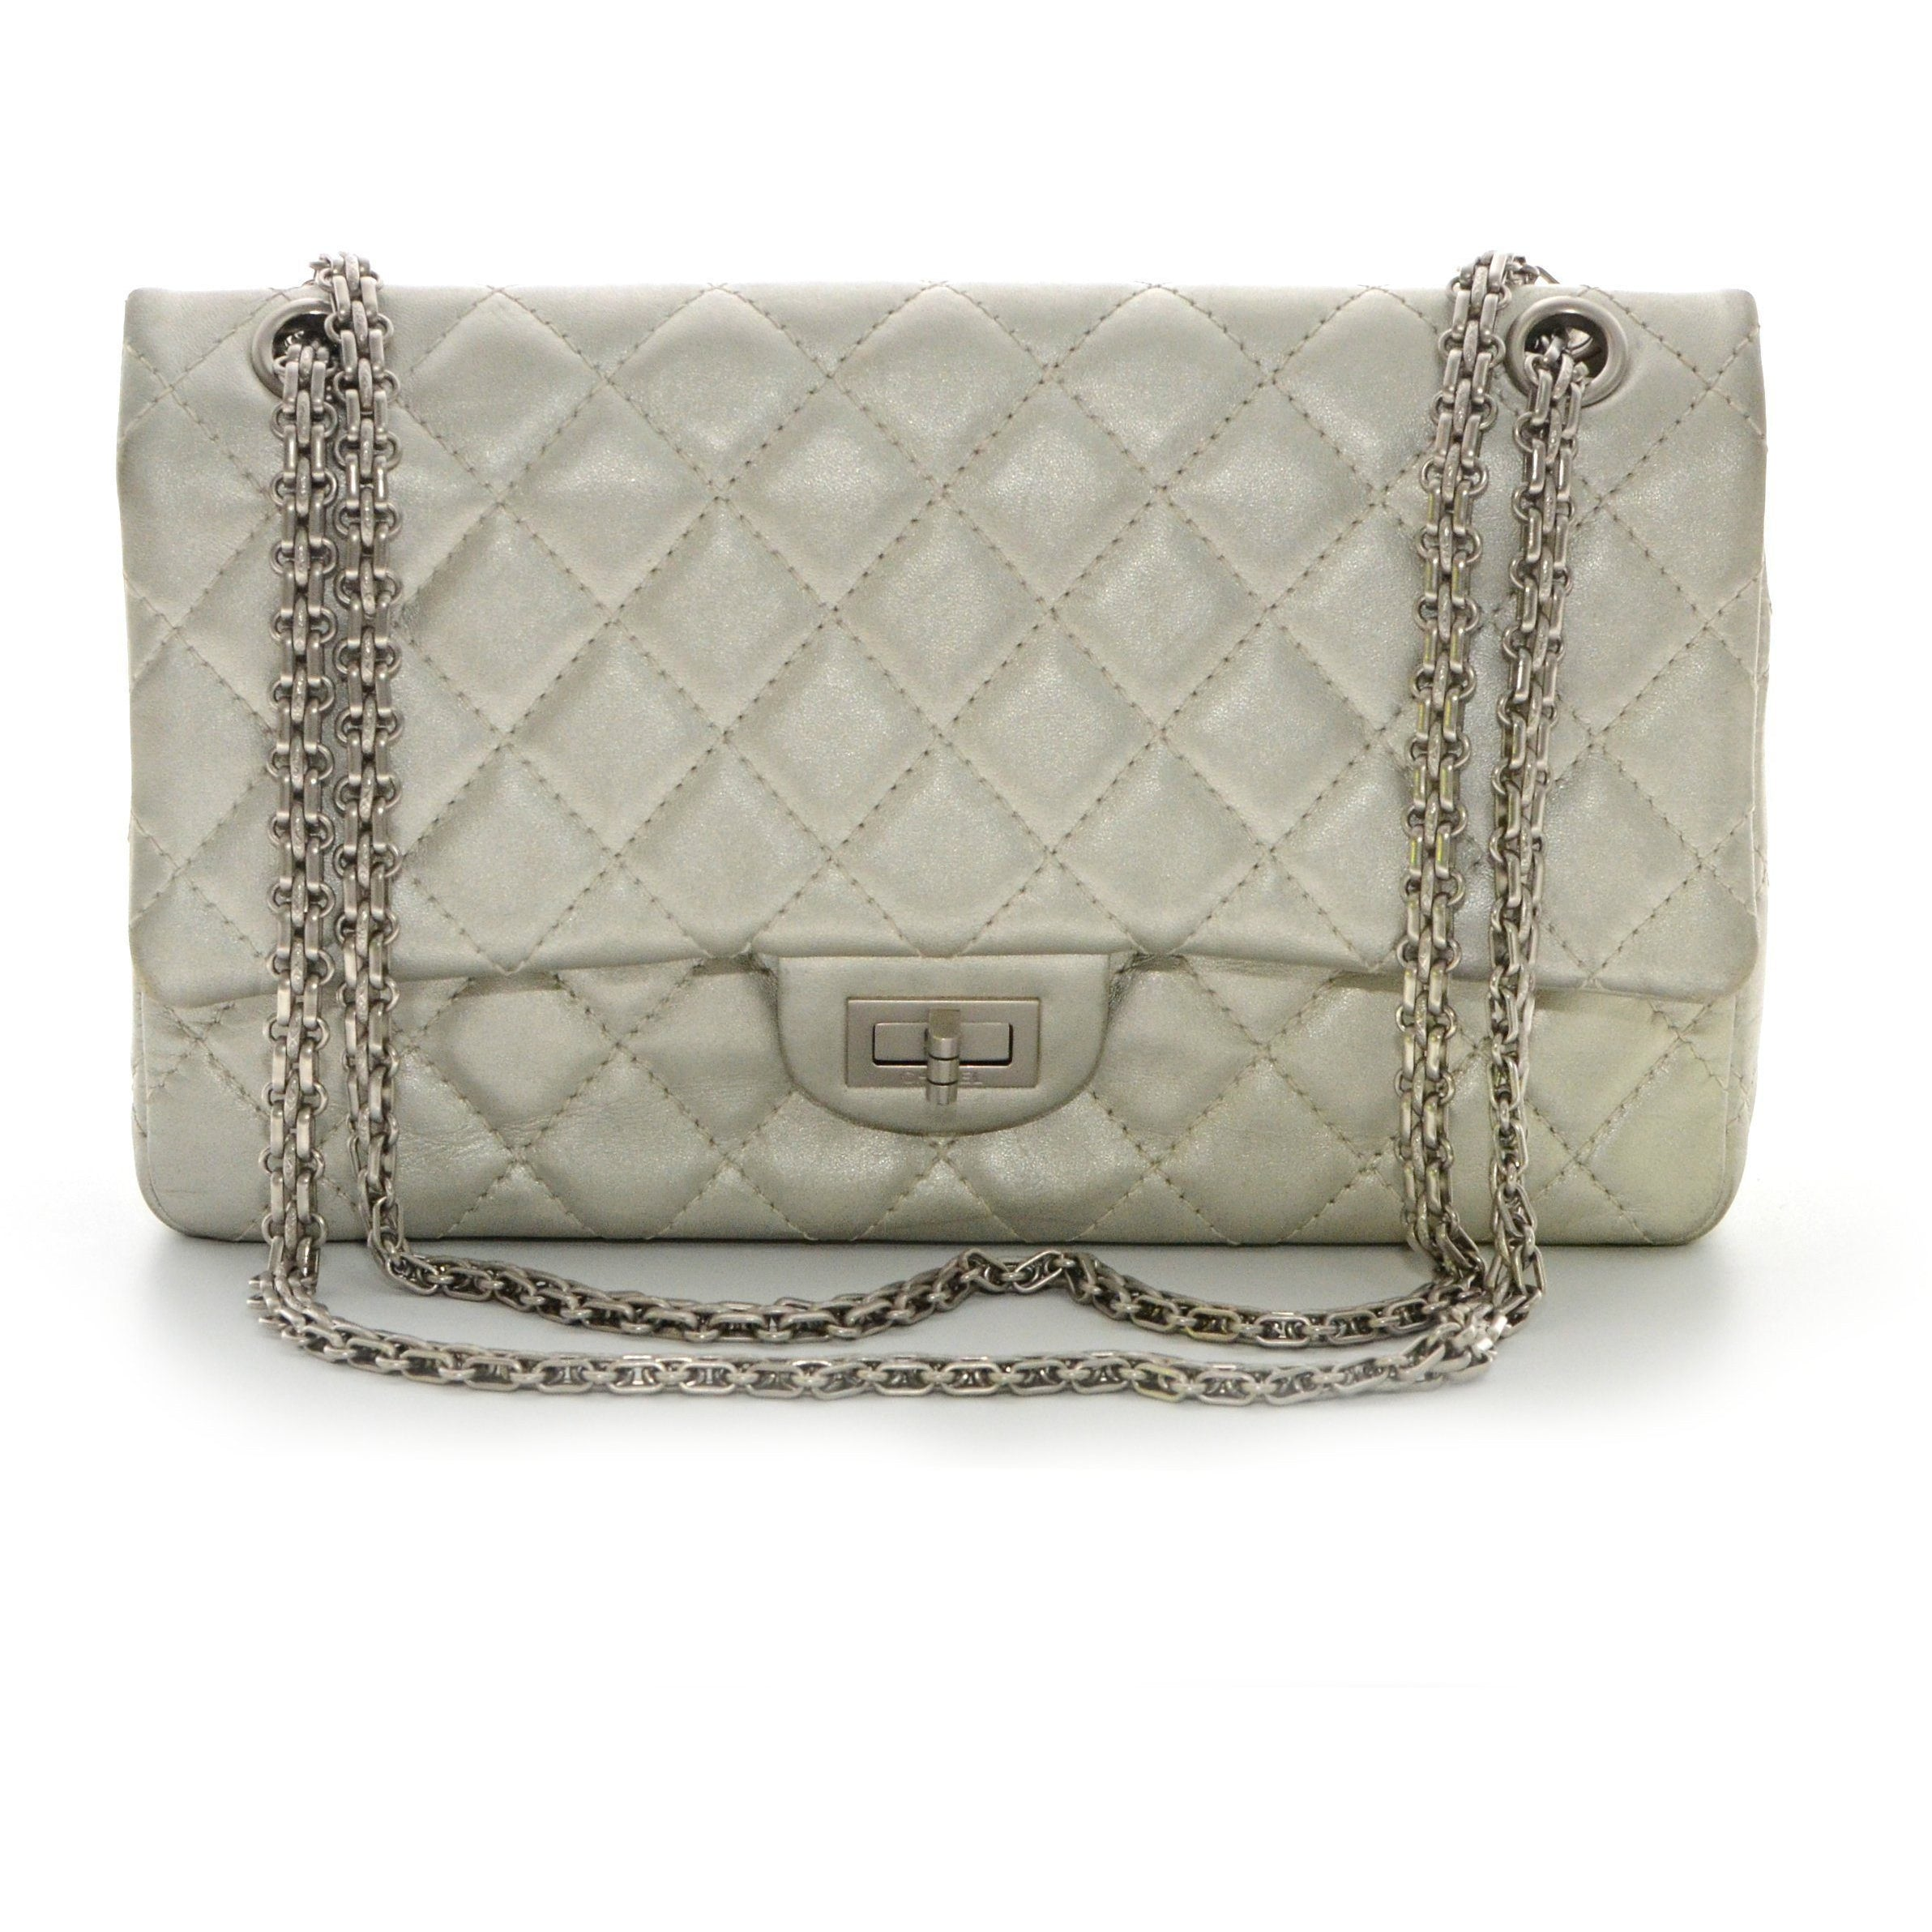 b5df90a0a47e CHANEL Metallic Aged Calfskin Quilted 2.55 Reissue 226 Flap Dark Silve – The  Vintage Contessa & Times Past